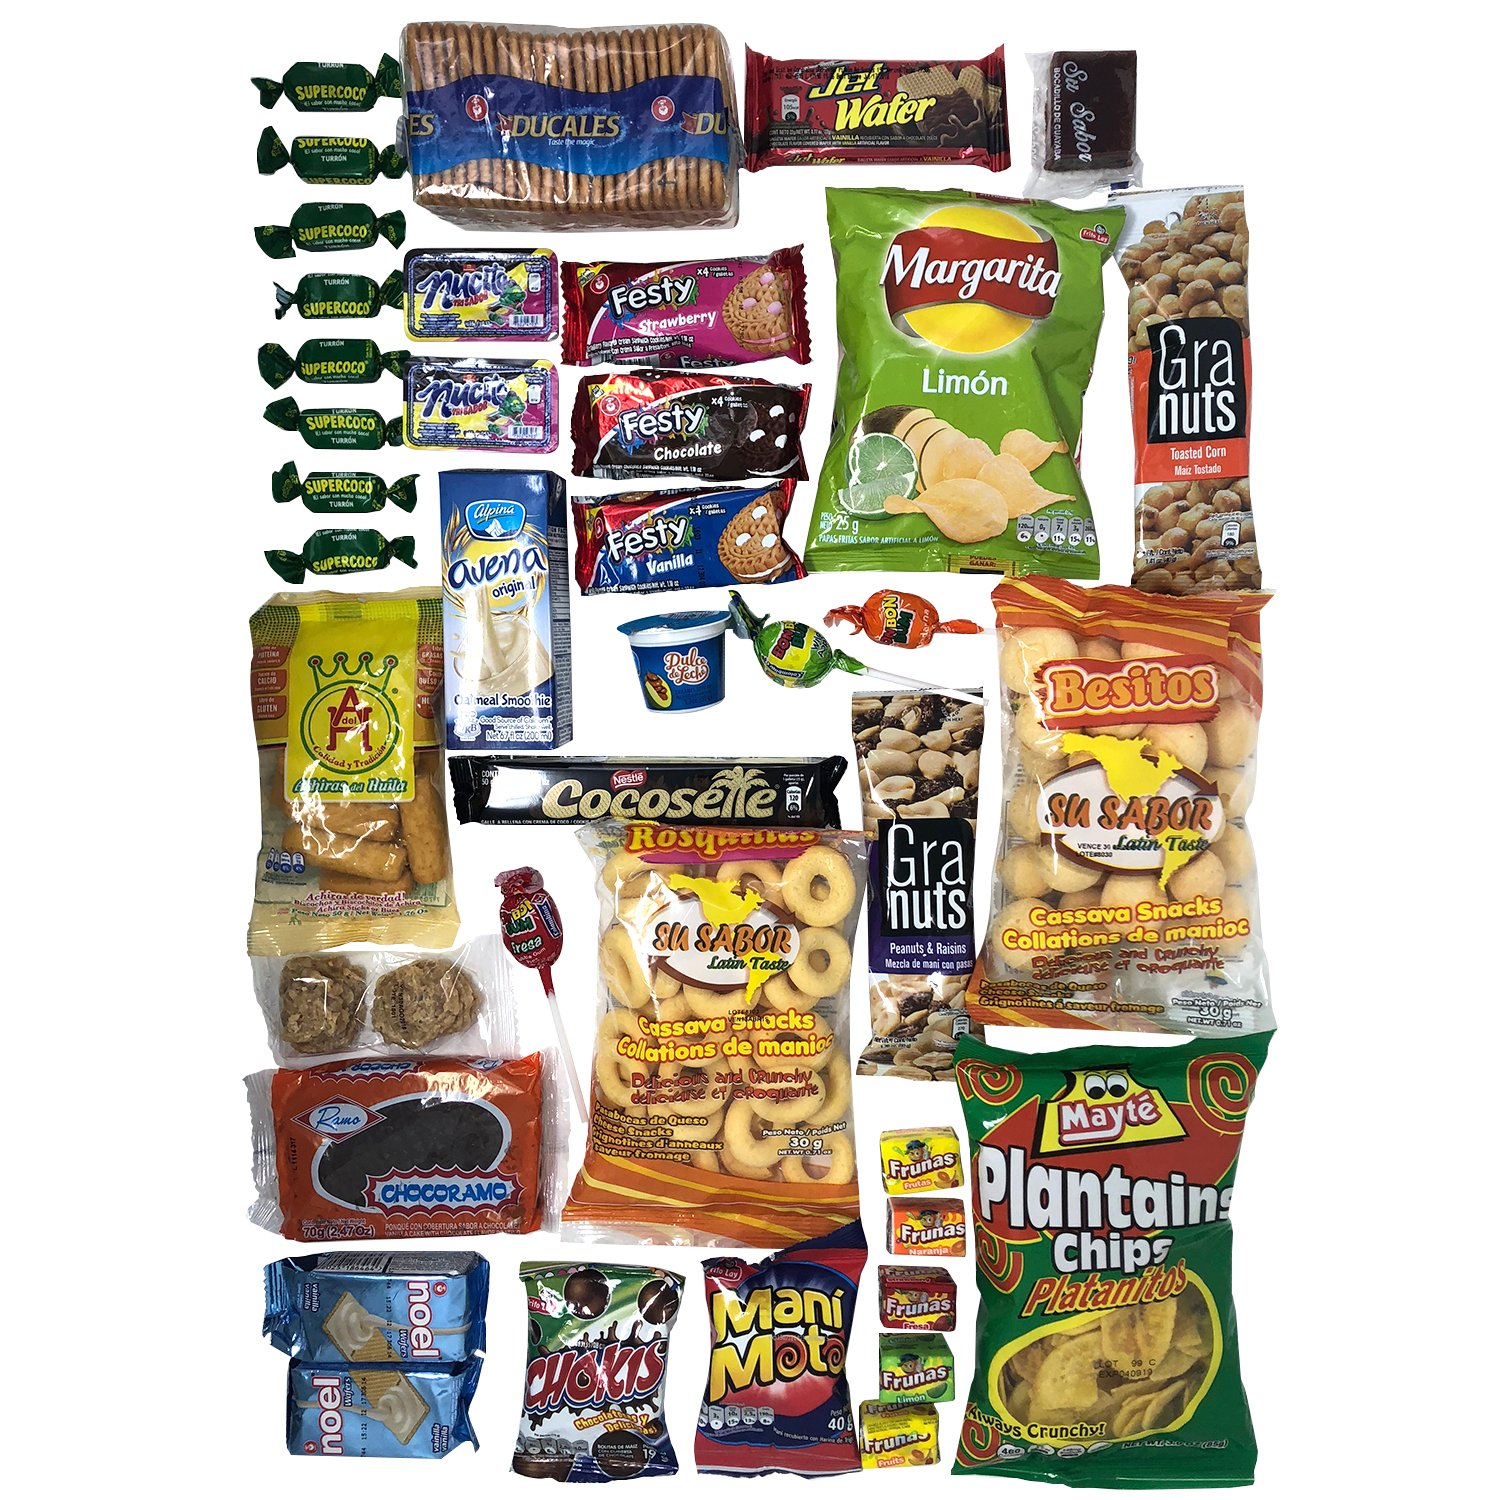 Colombian Snacks Sampler Variety Box - Cookies, Chips & Candies Assortment Pack - Delicious...